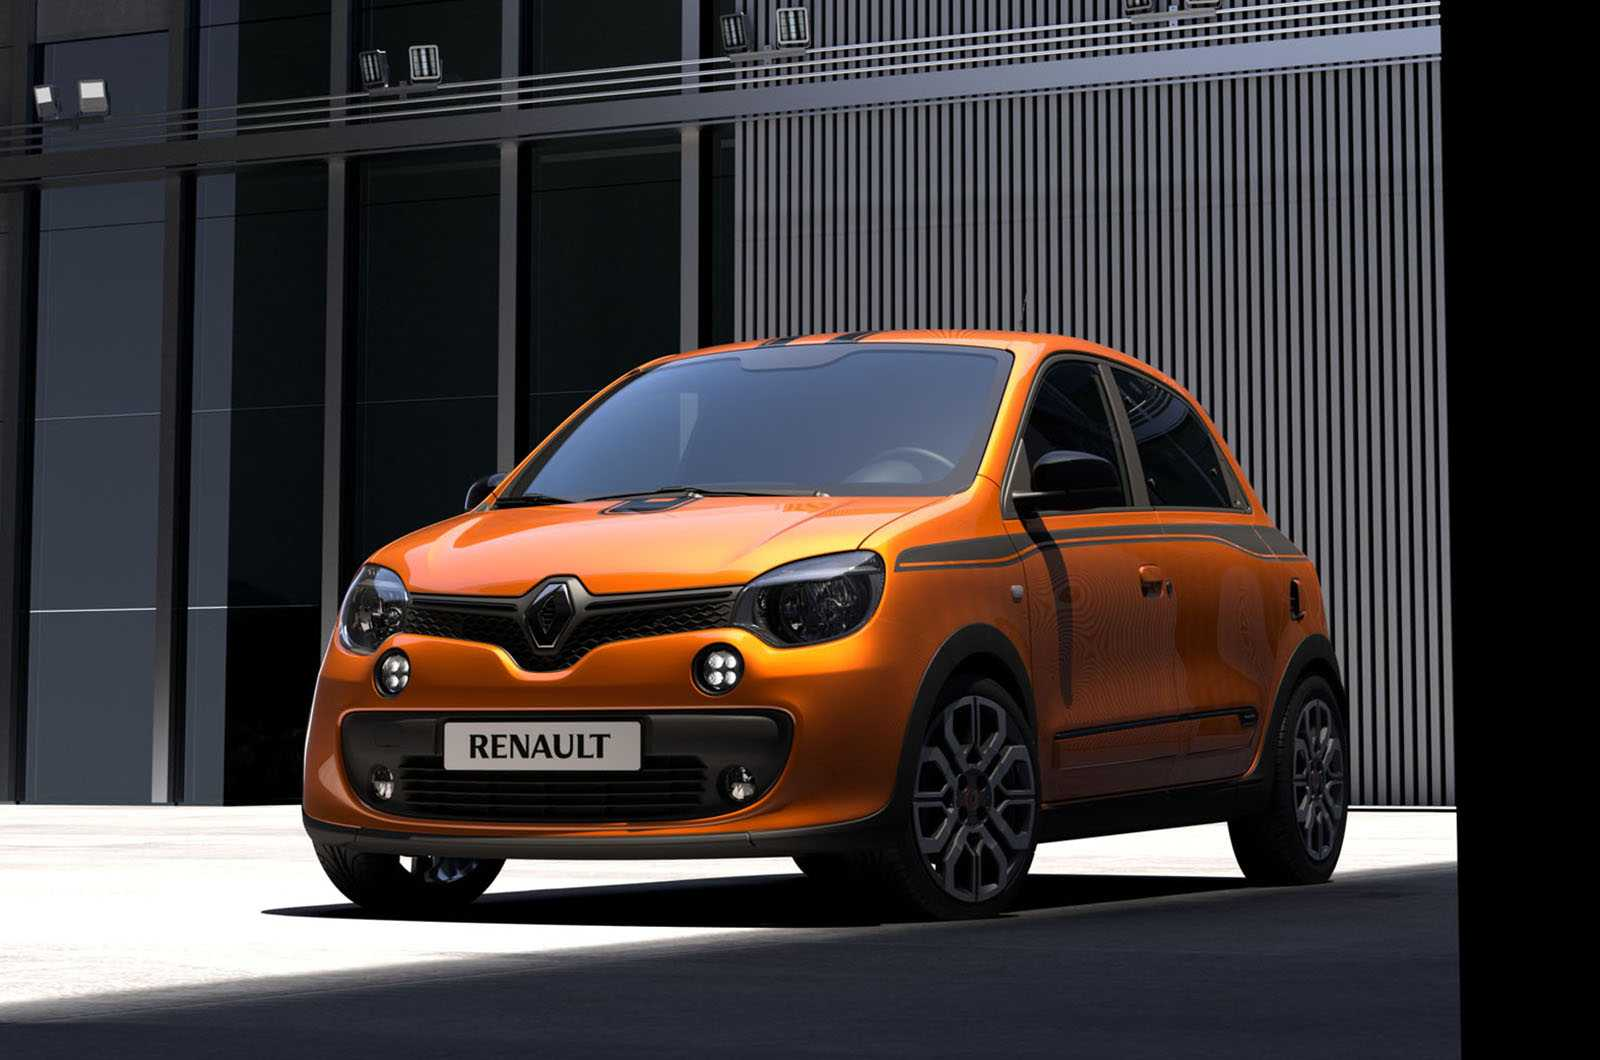 Renault Twingo GT and Dynamique S Revealed, Pricing, Specs and More Details